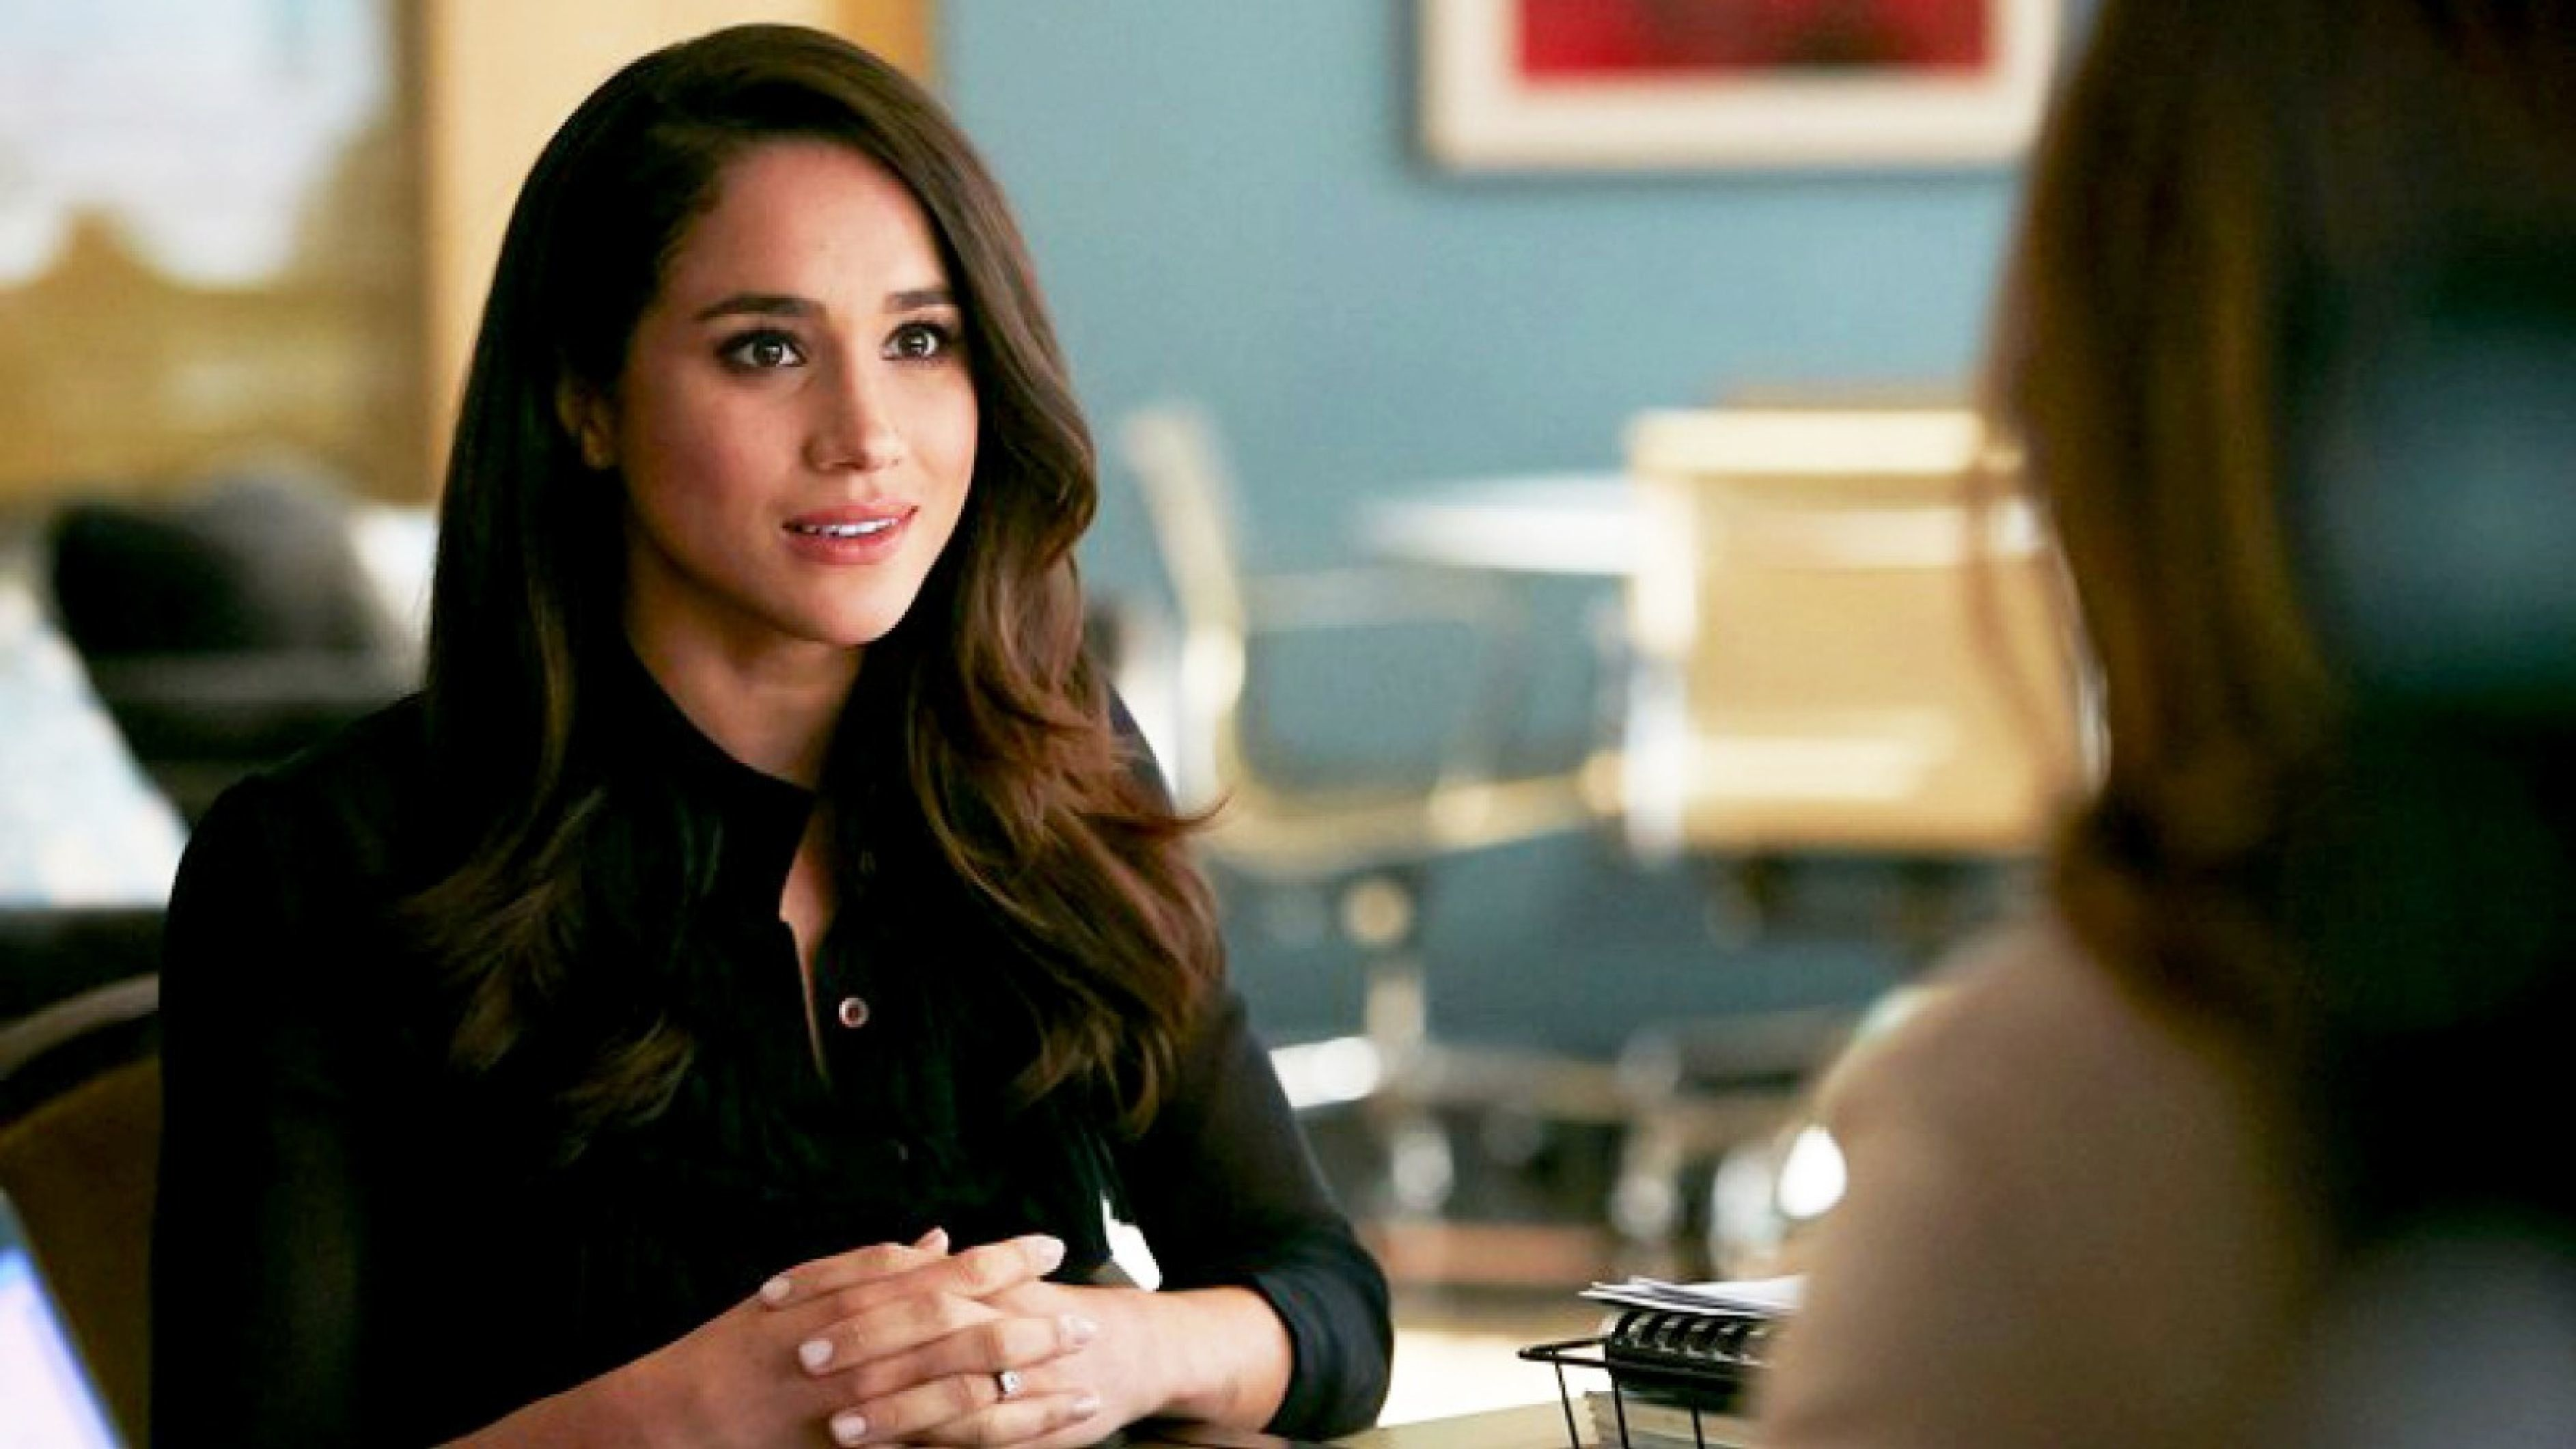 Meghan Markle's Last 'Suits' Episode Will Be Available To Stream Just In Time For Royal